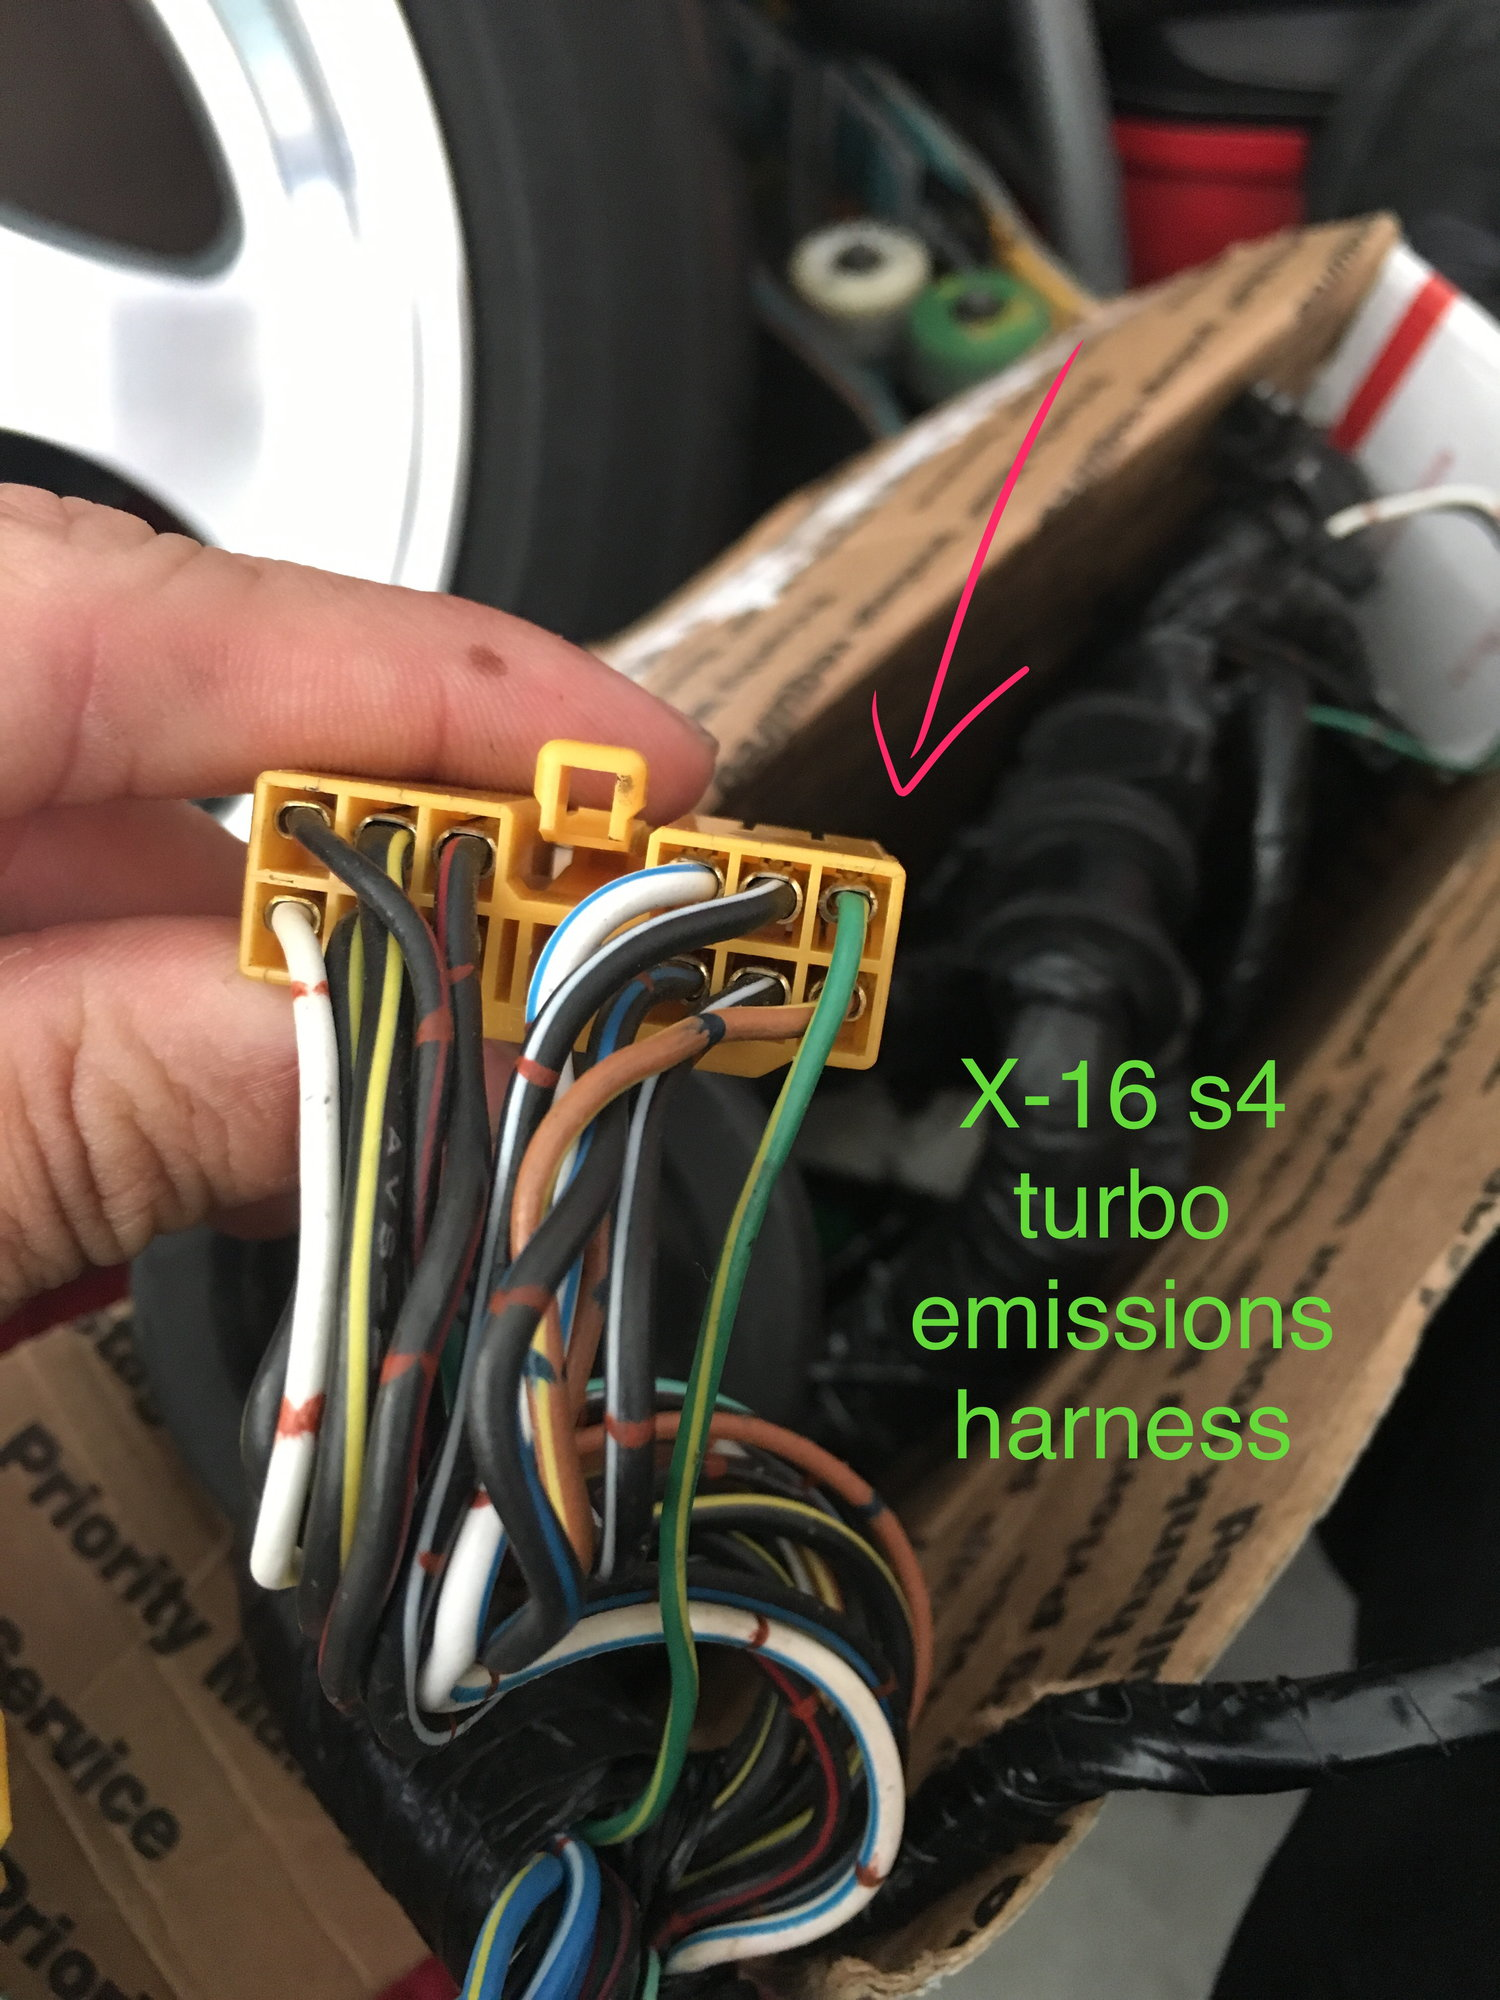 hight resolution of  within the 2 connectors tell you what each wire goes to because rats nest was removed and power steering as well so i would like to de pin those